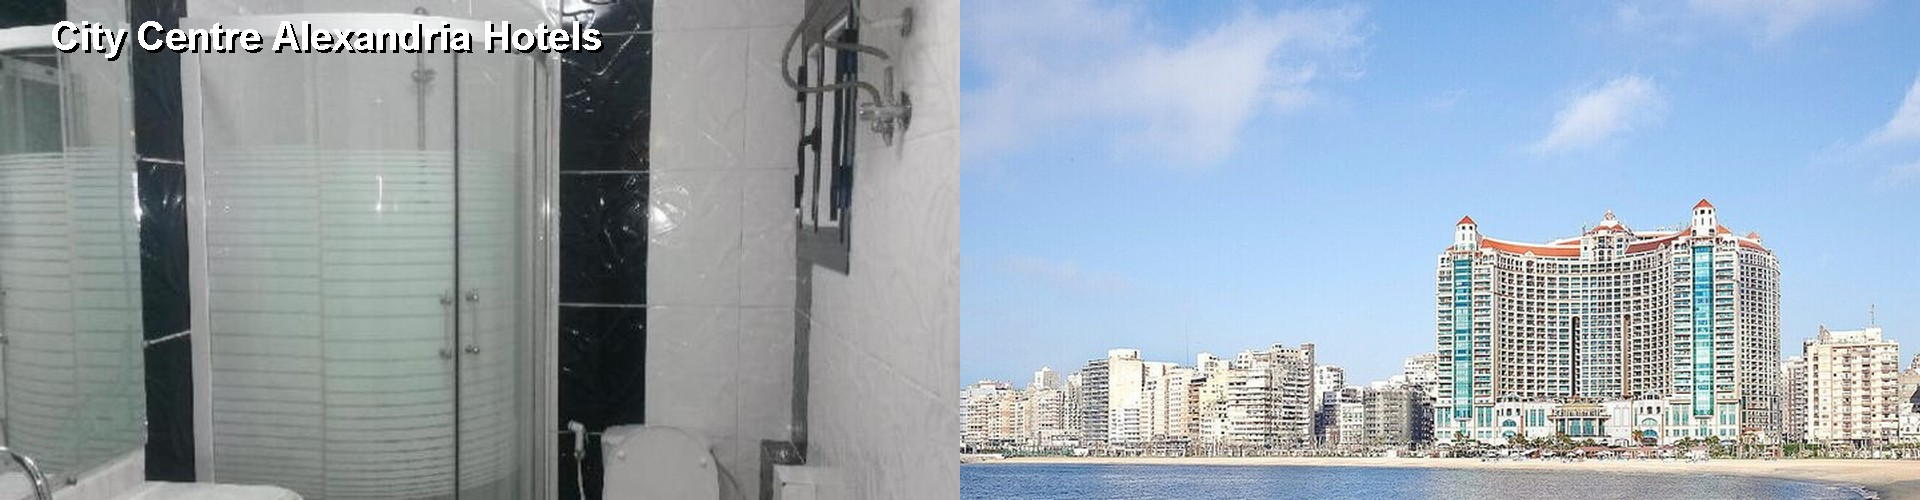 5 Best Hotels near City Centre Alexandria